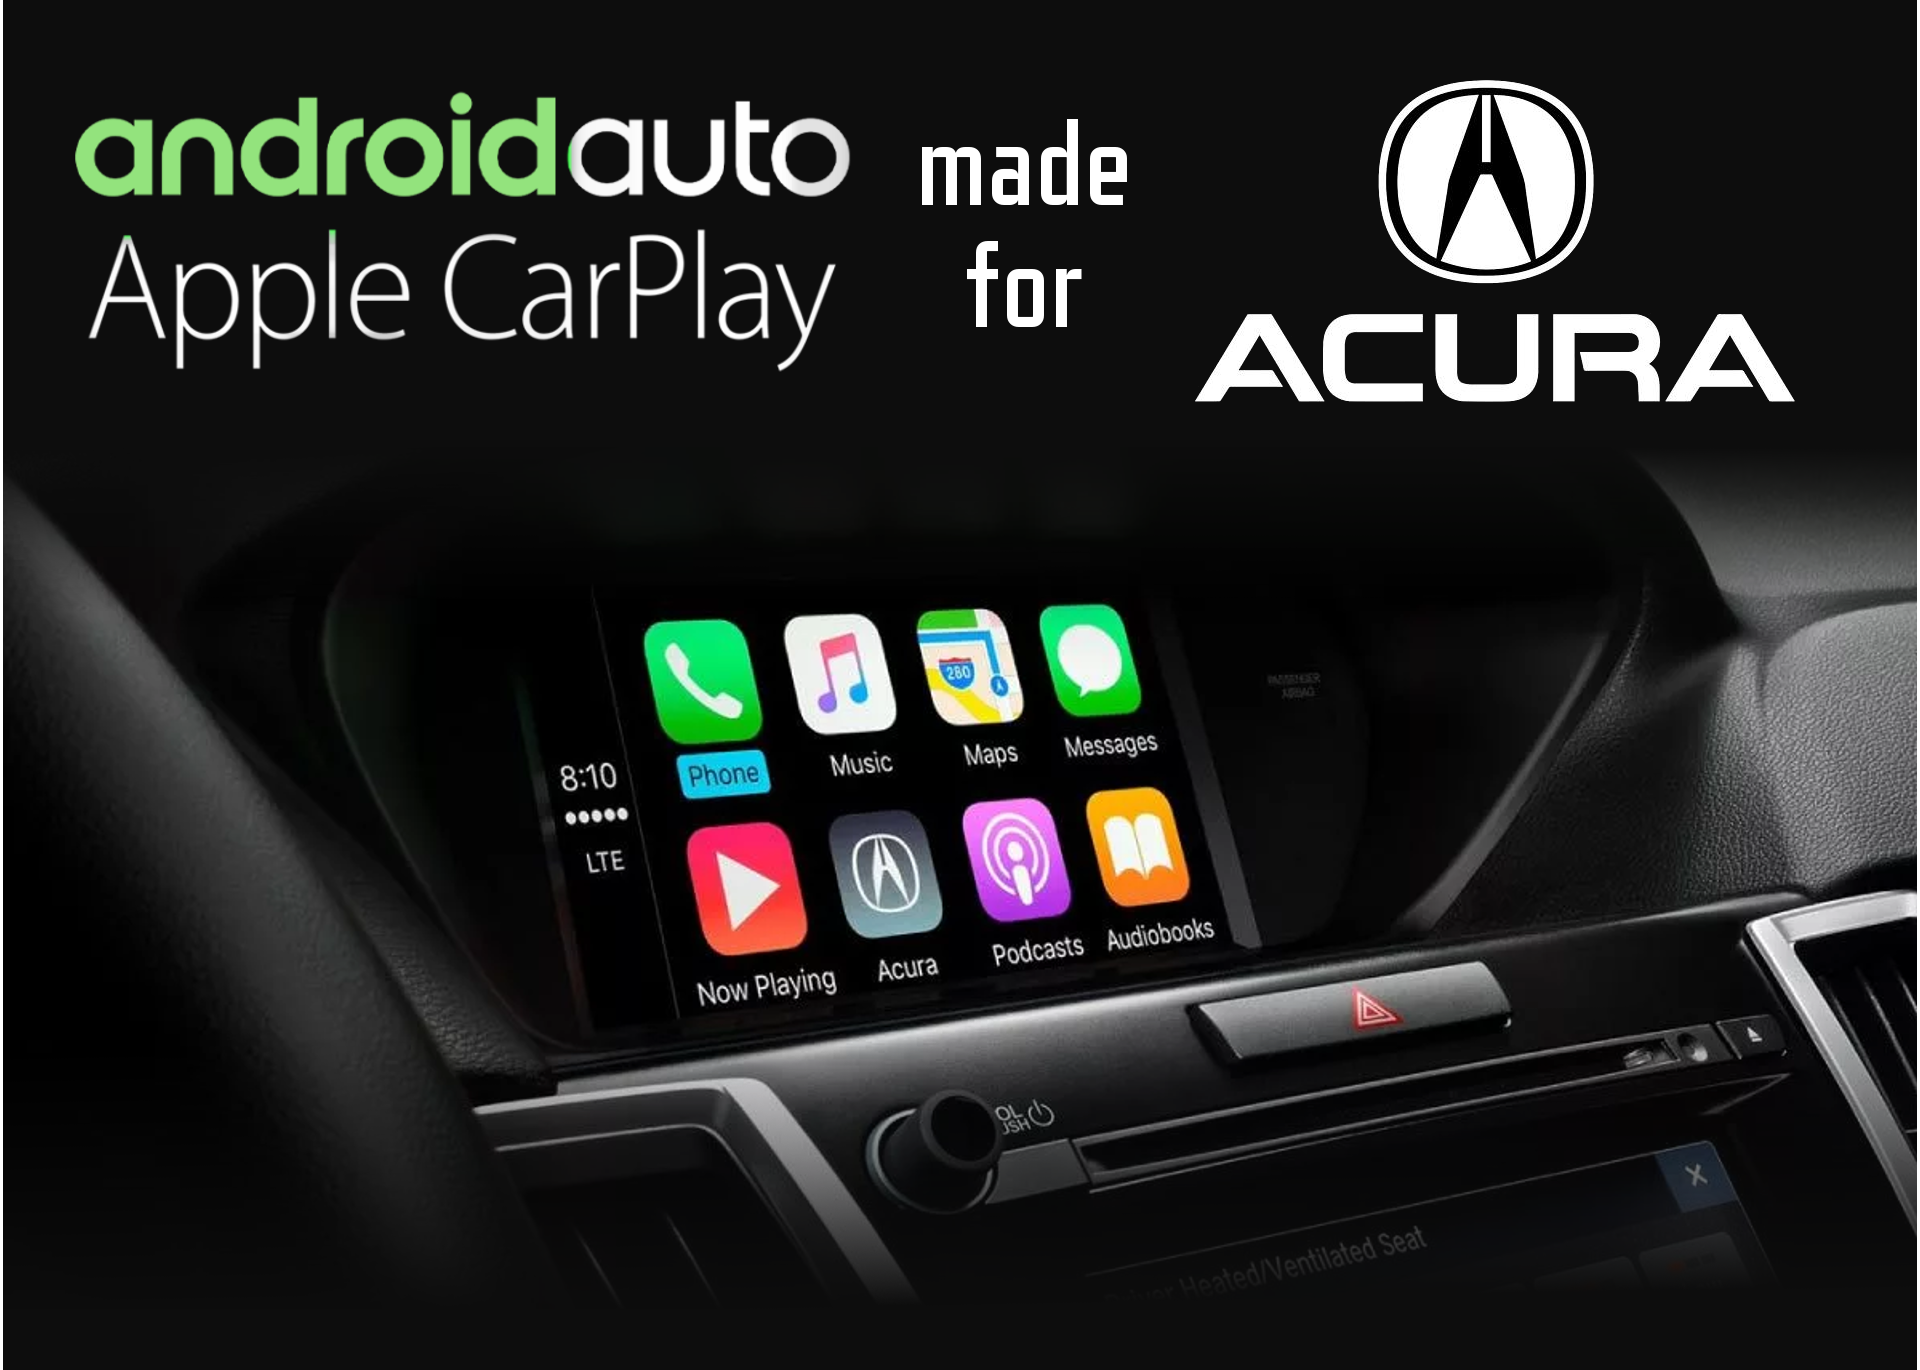 Aftermarket Apple Carplay, Android Auto integration for factory Acura radio screen ILX, MDX, RDX, RLX, TL, TLX, TSX, ZDX 2010 - 2019